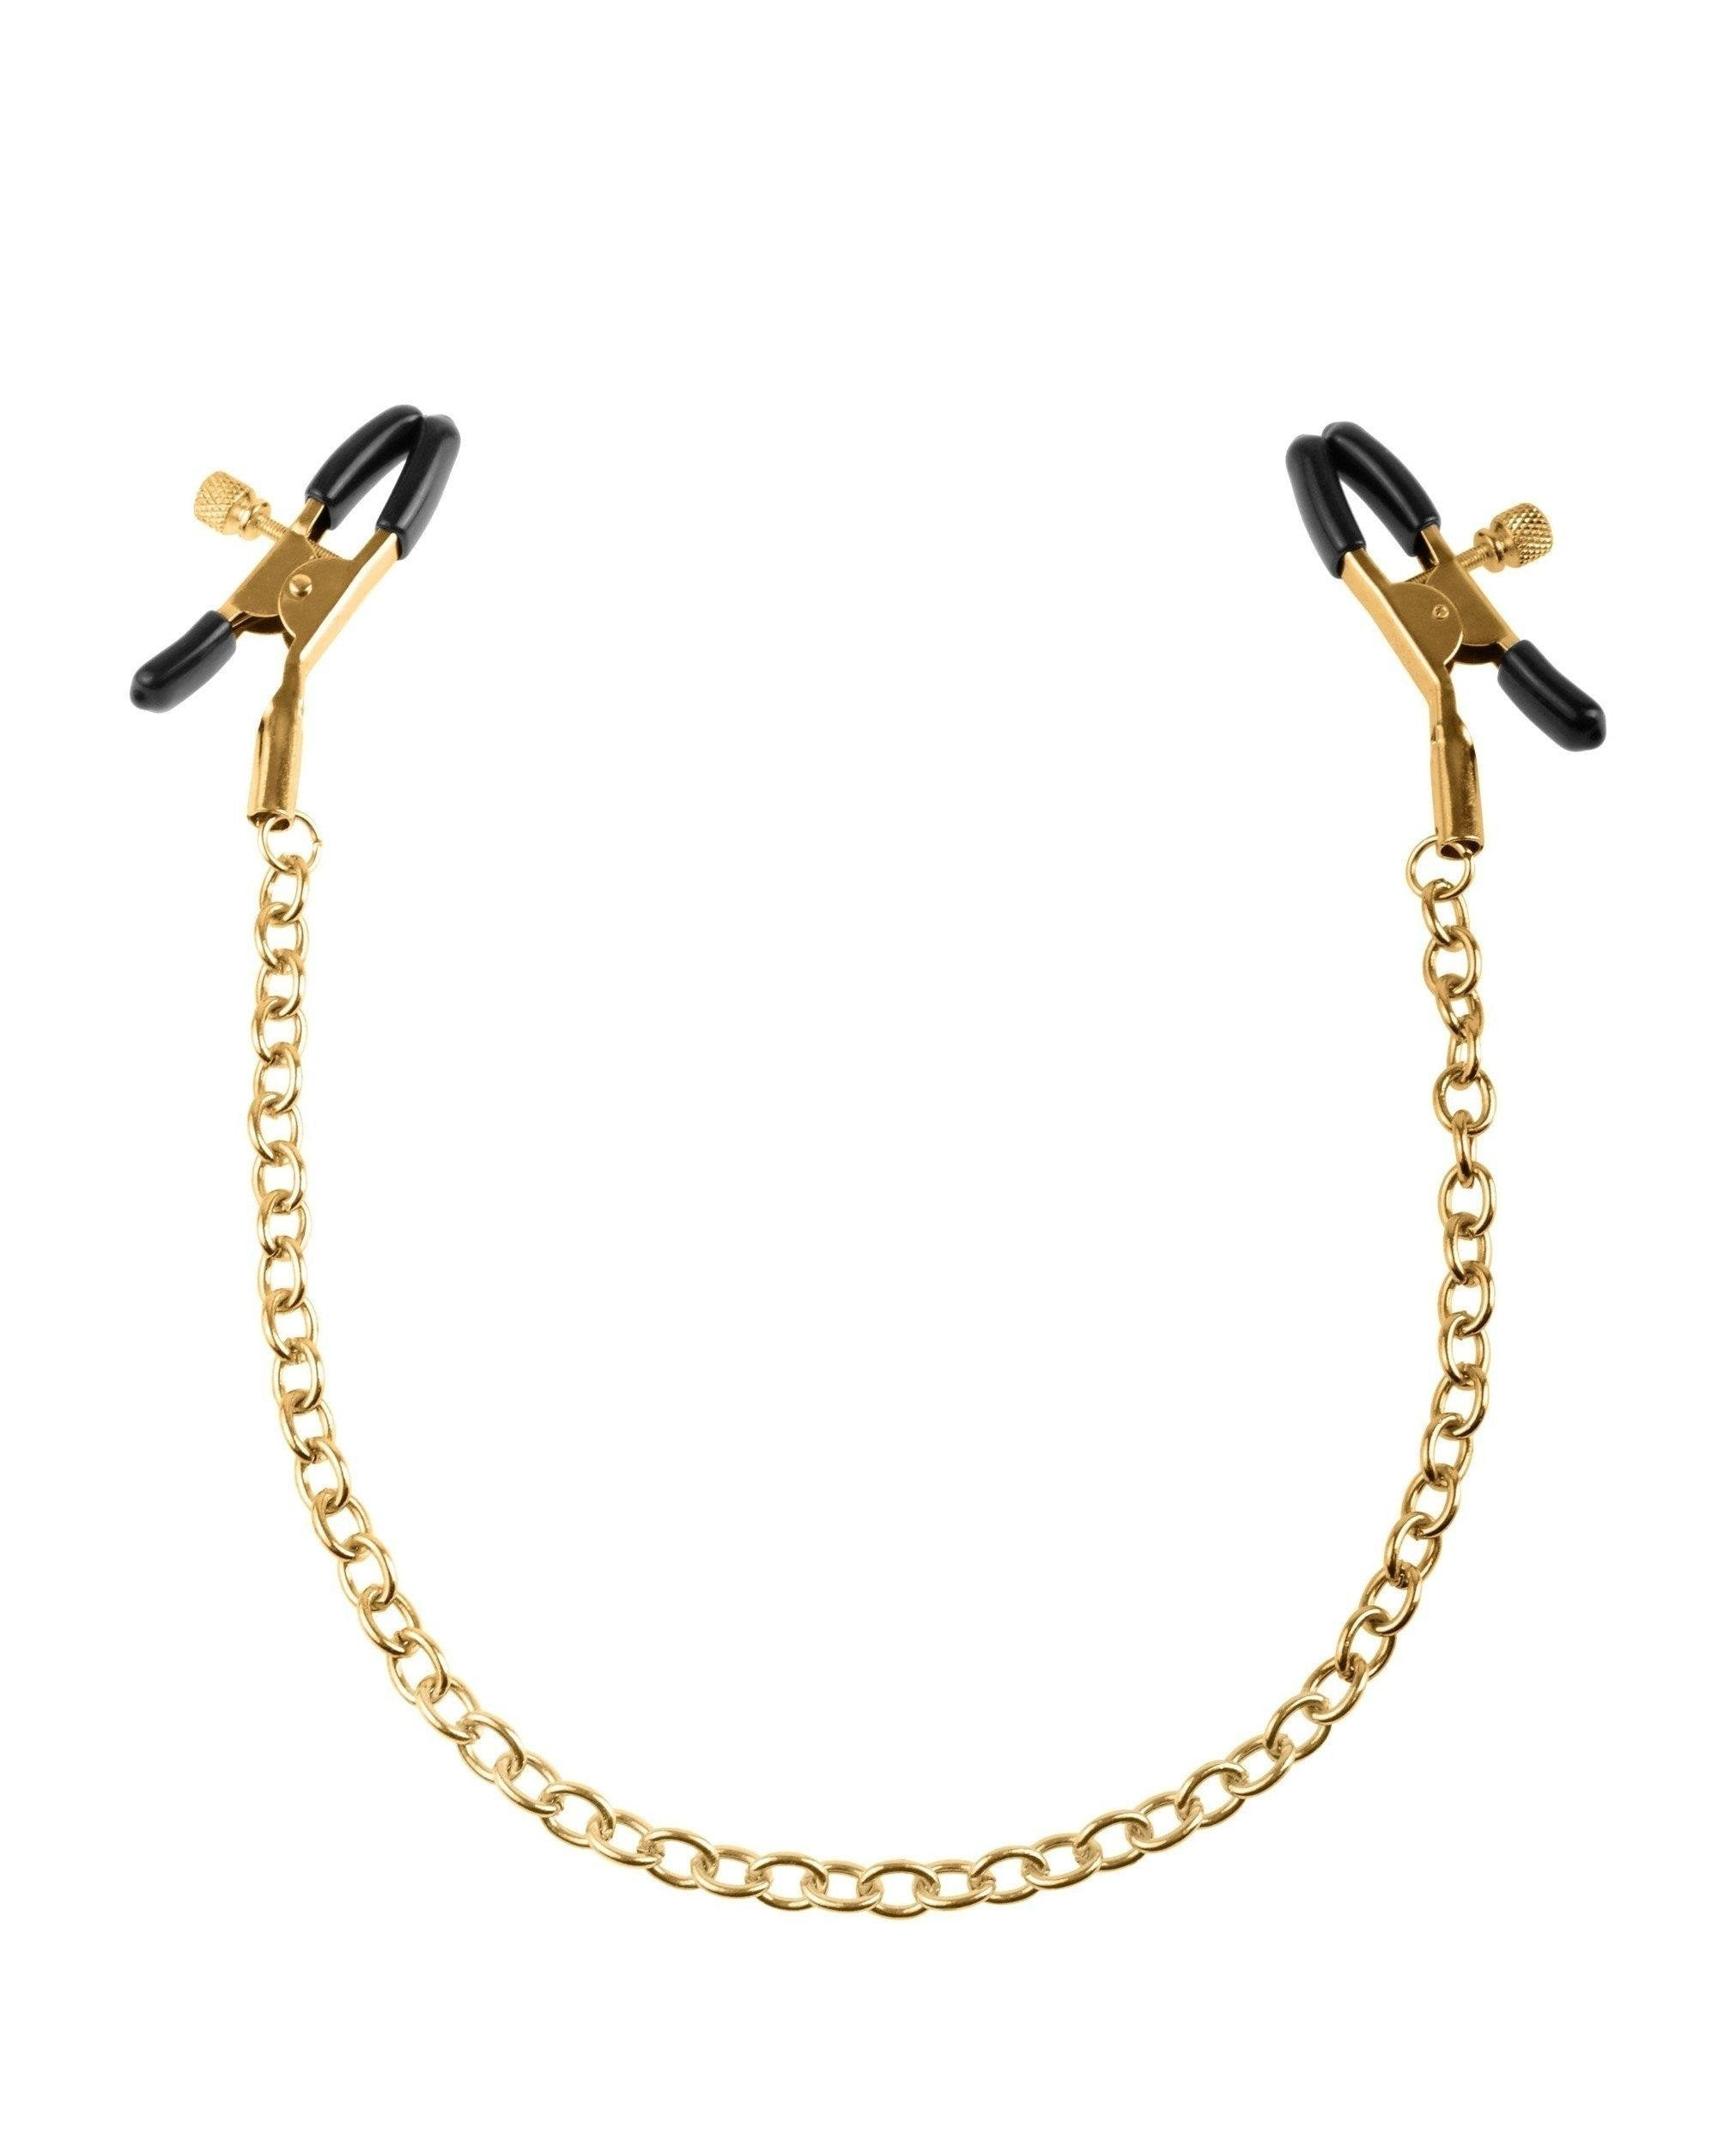 Fetish Fantasy Gold Chain Nipple Clamps sex toys color goldNakees